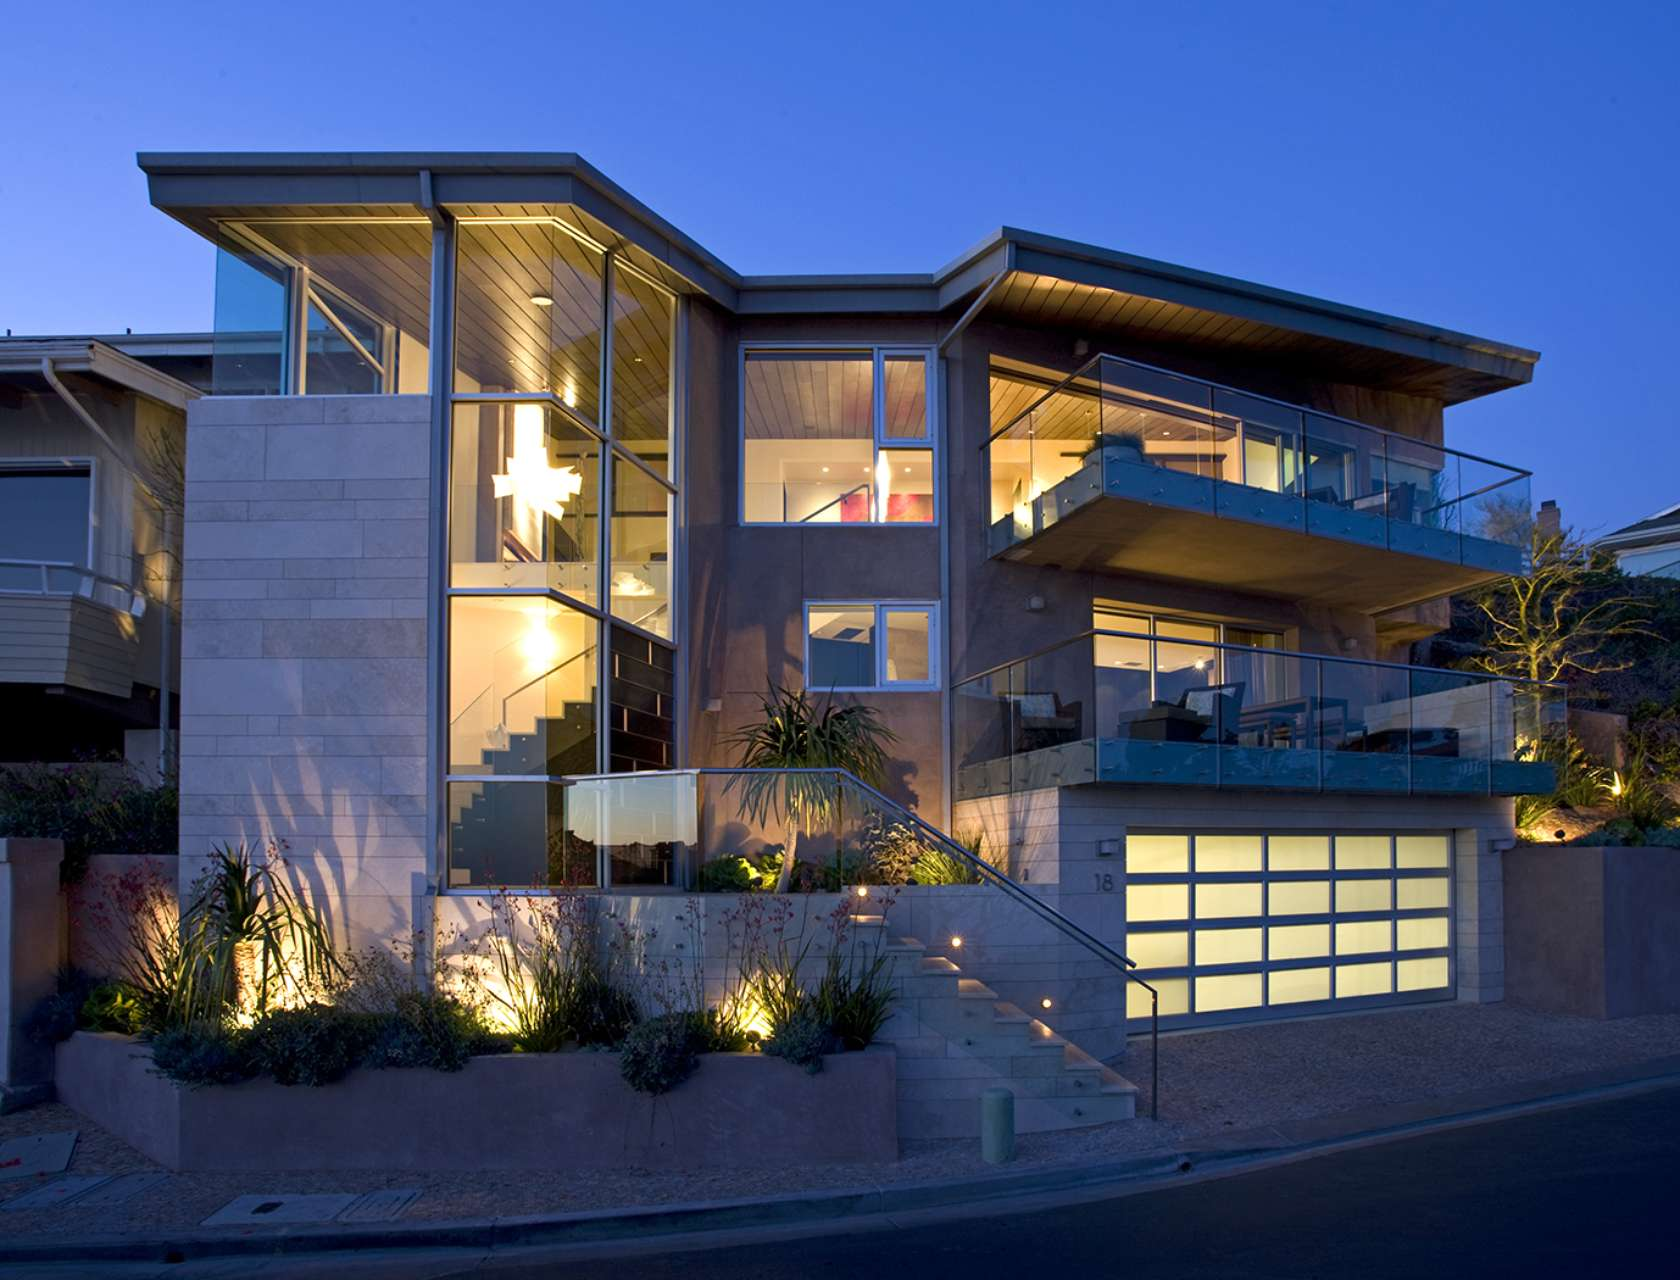 California Modern Architecture Horst Architects Inc Architizer